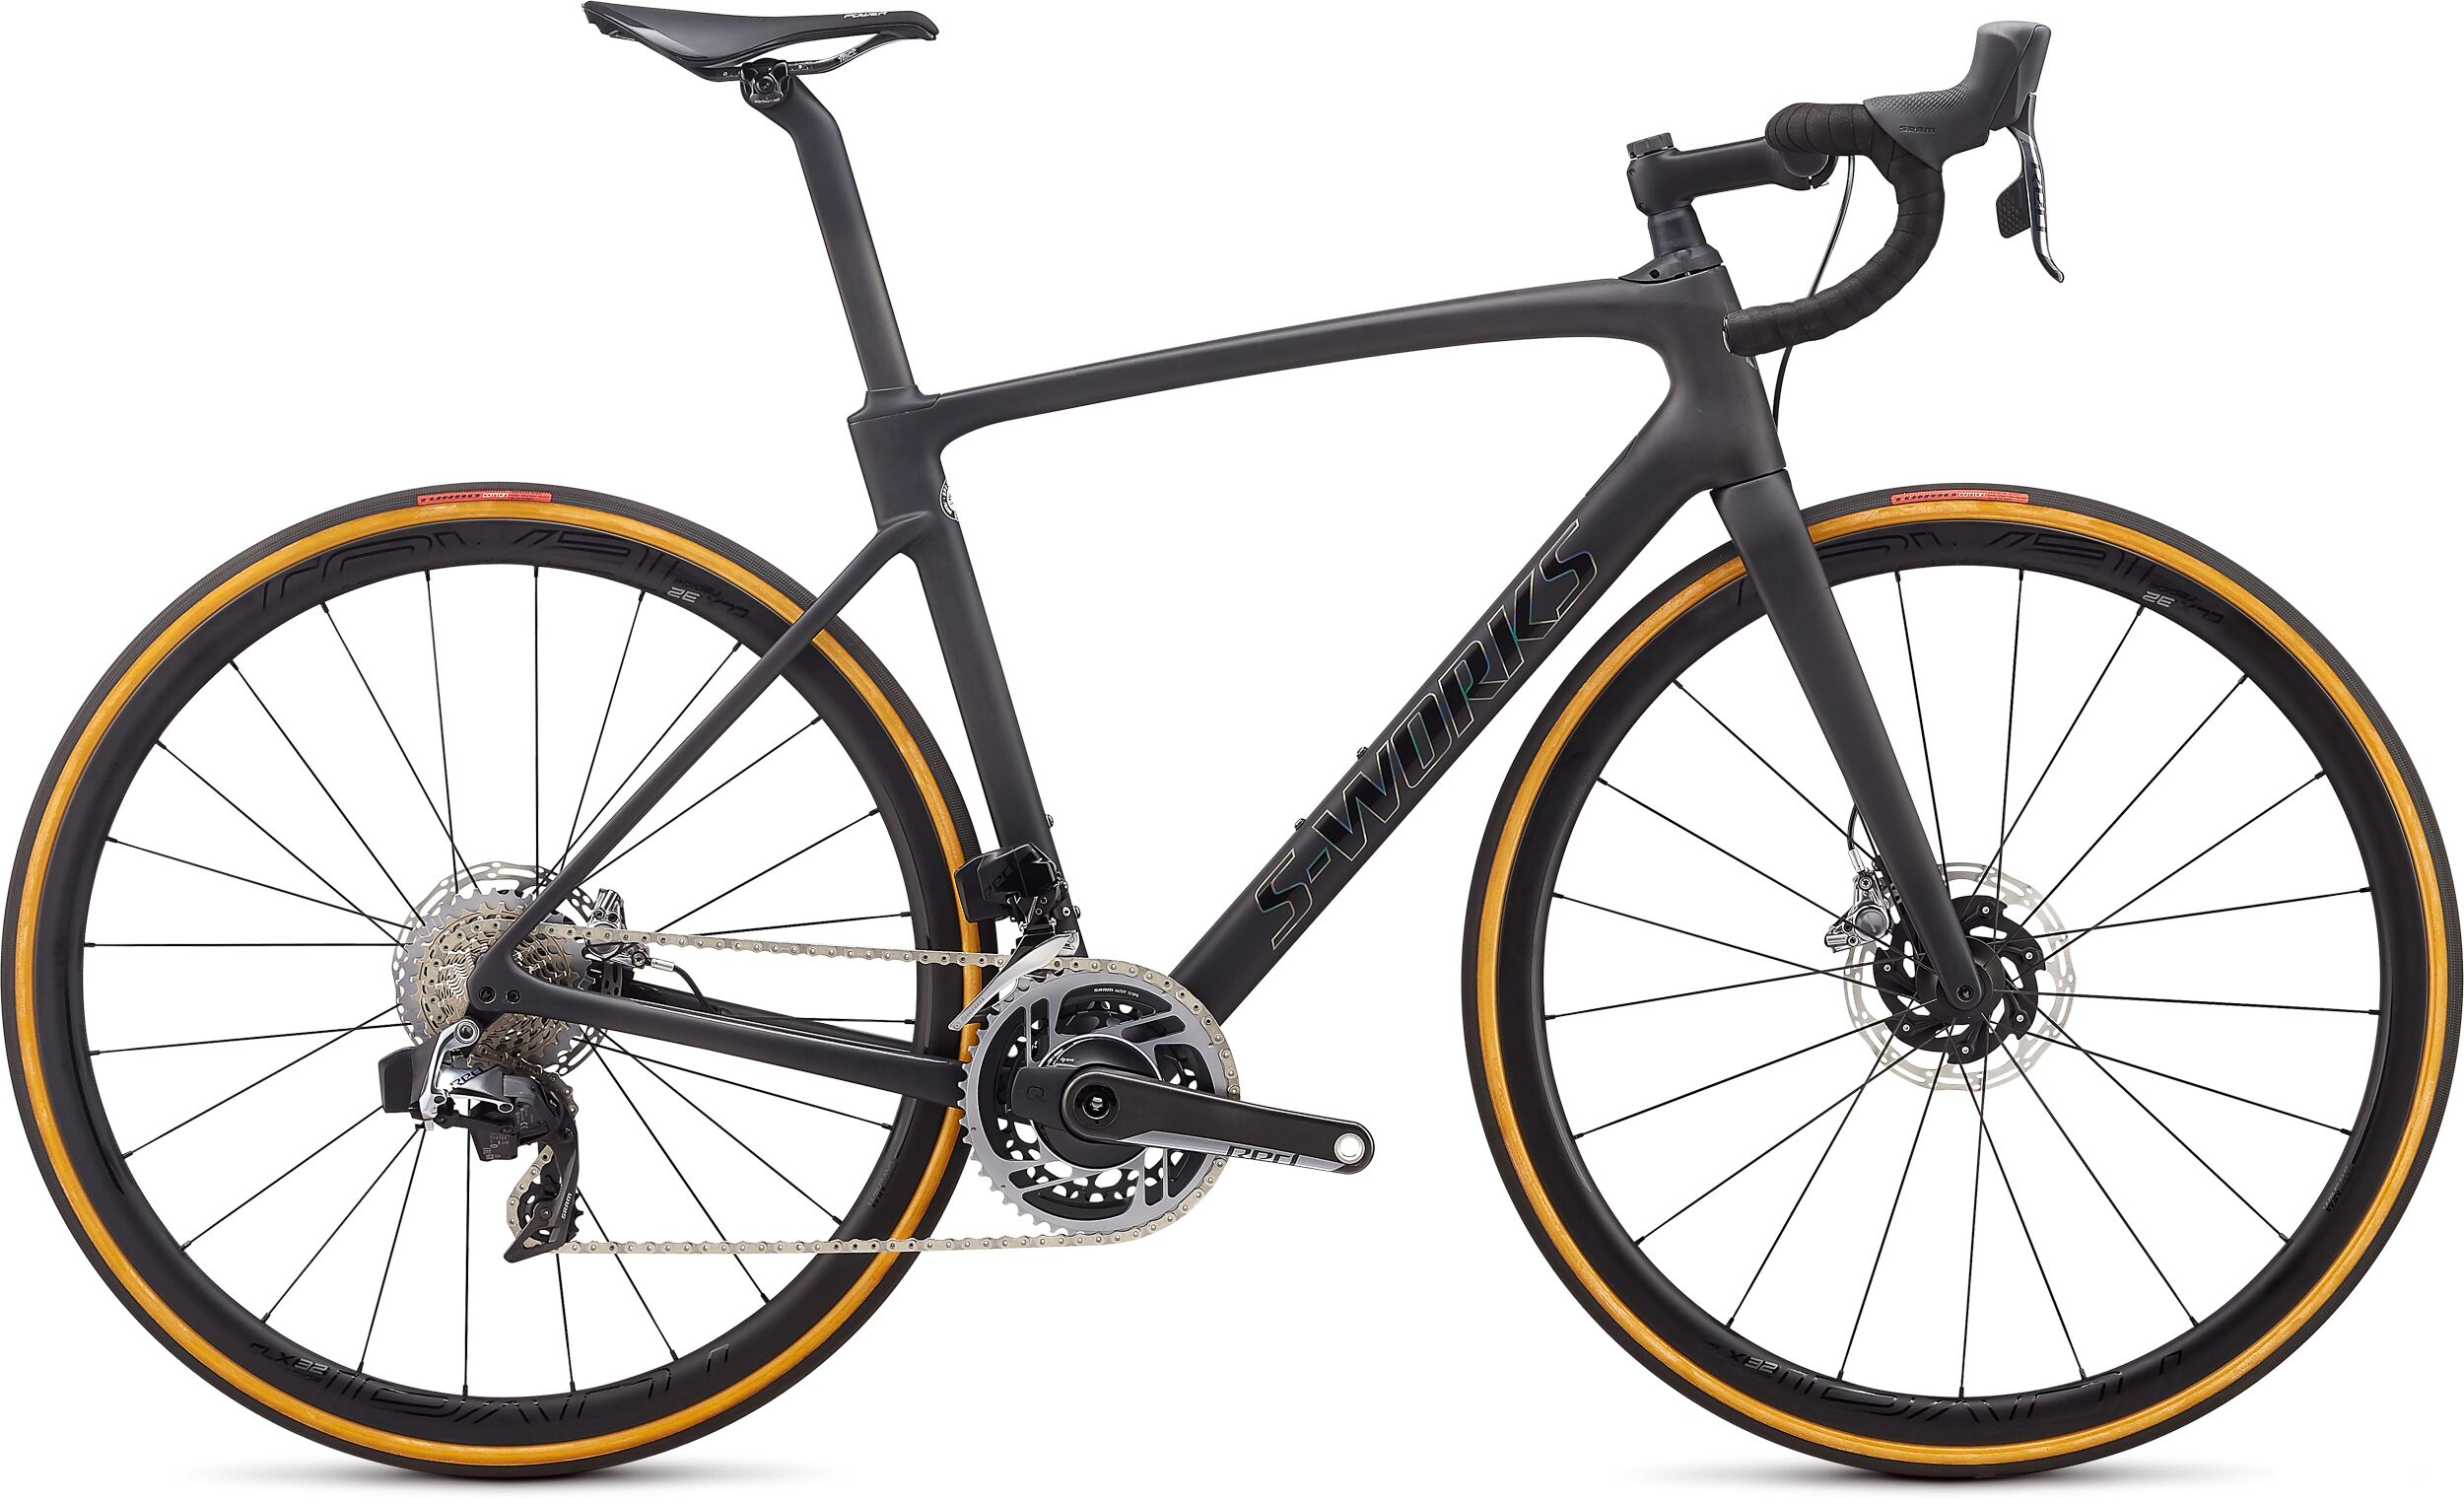 2020 Specialized S-Works Roubaix SRAM Red eTAP AXS in Carbon